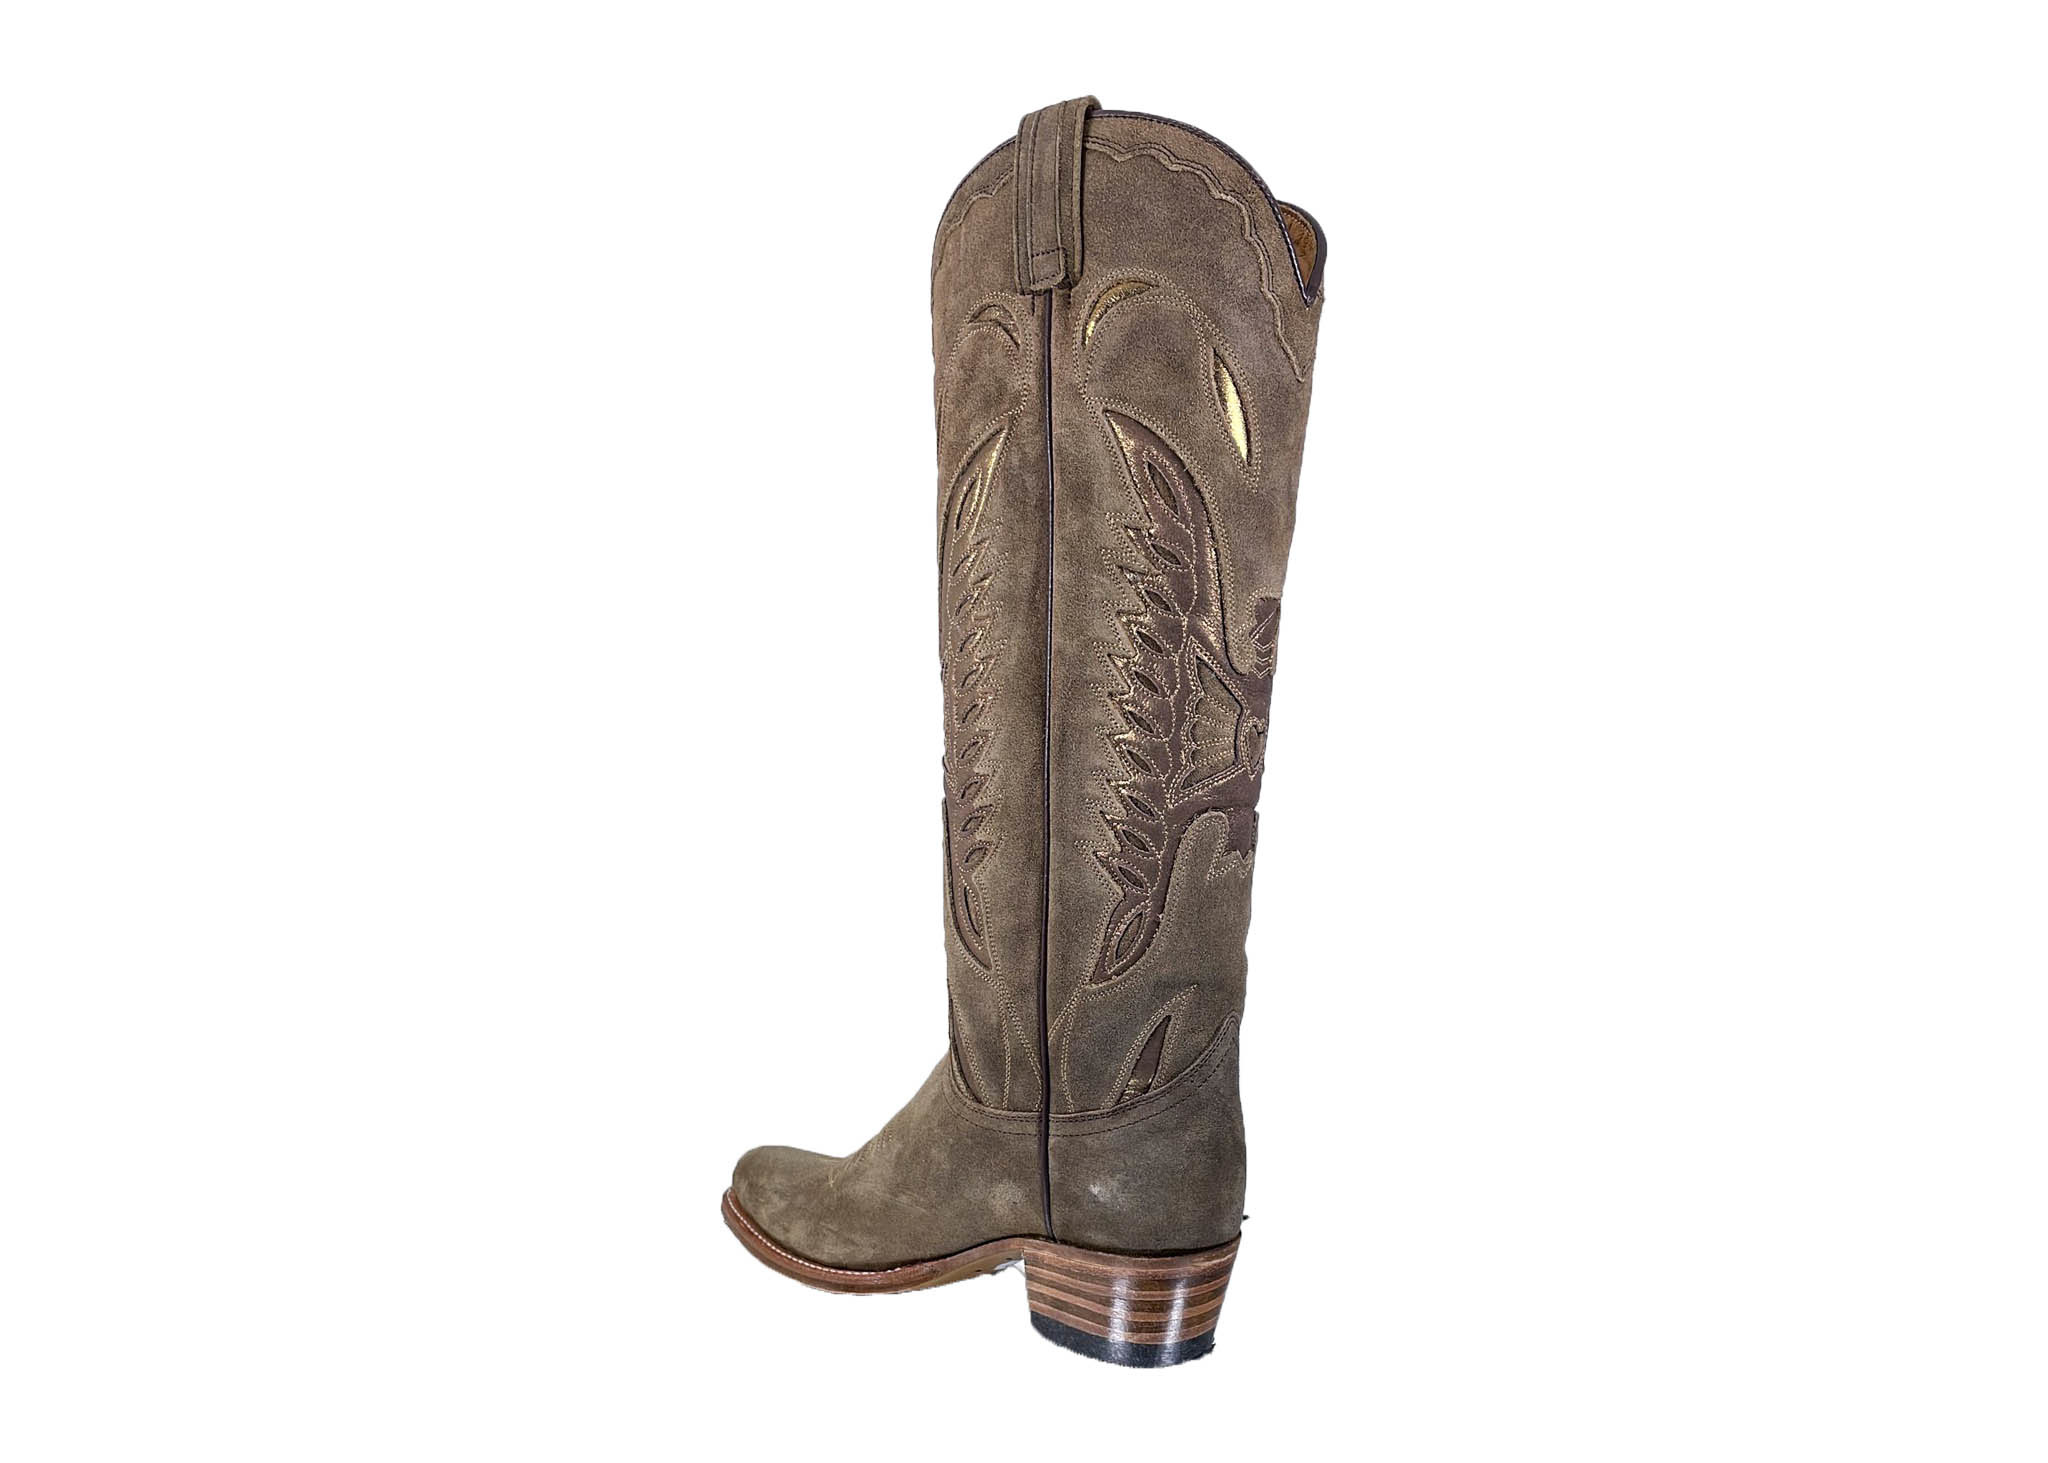 Sendra Boots Sendra 45807 Western Boots Taupe